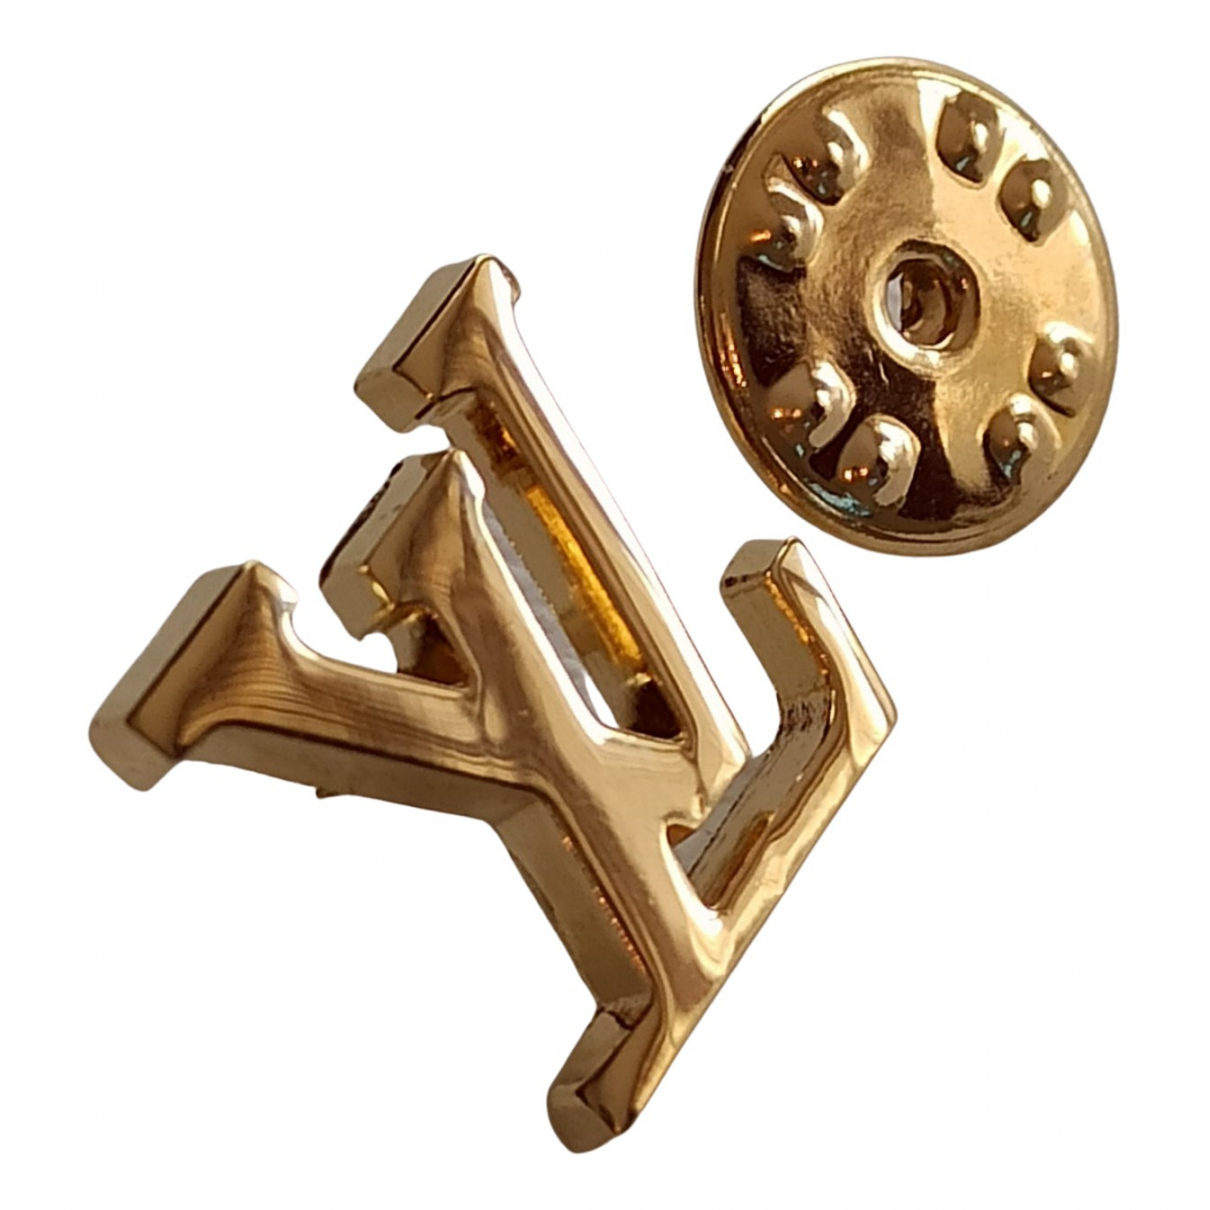 Broche en Metal Dorado Louis Vuitton